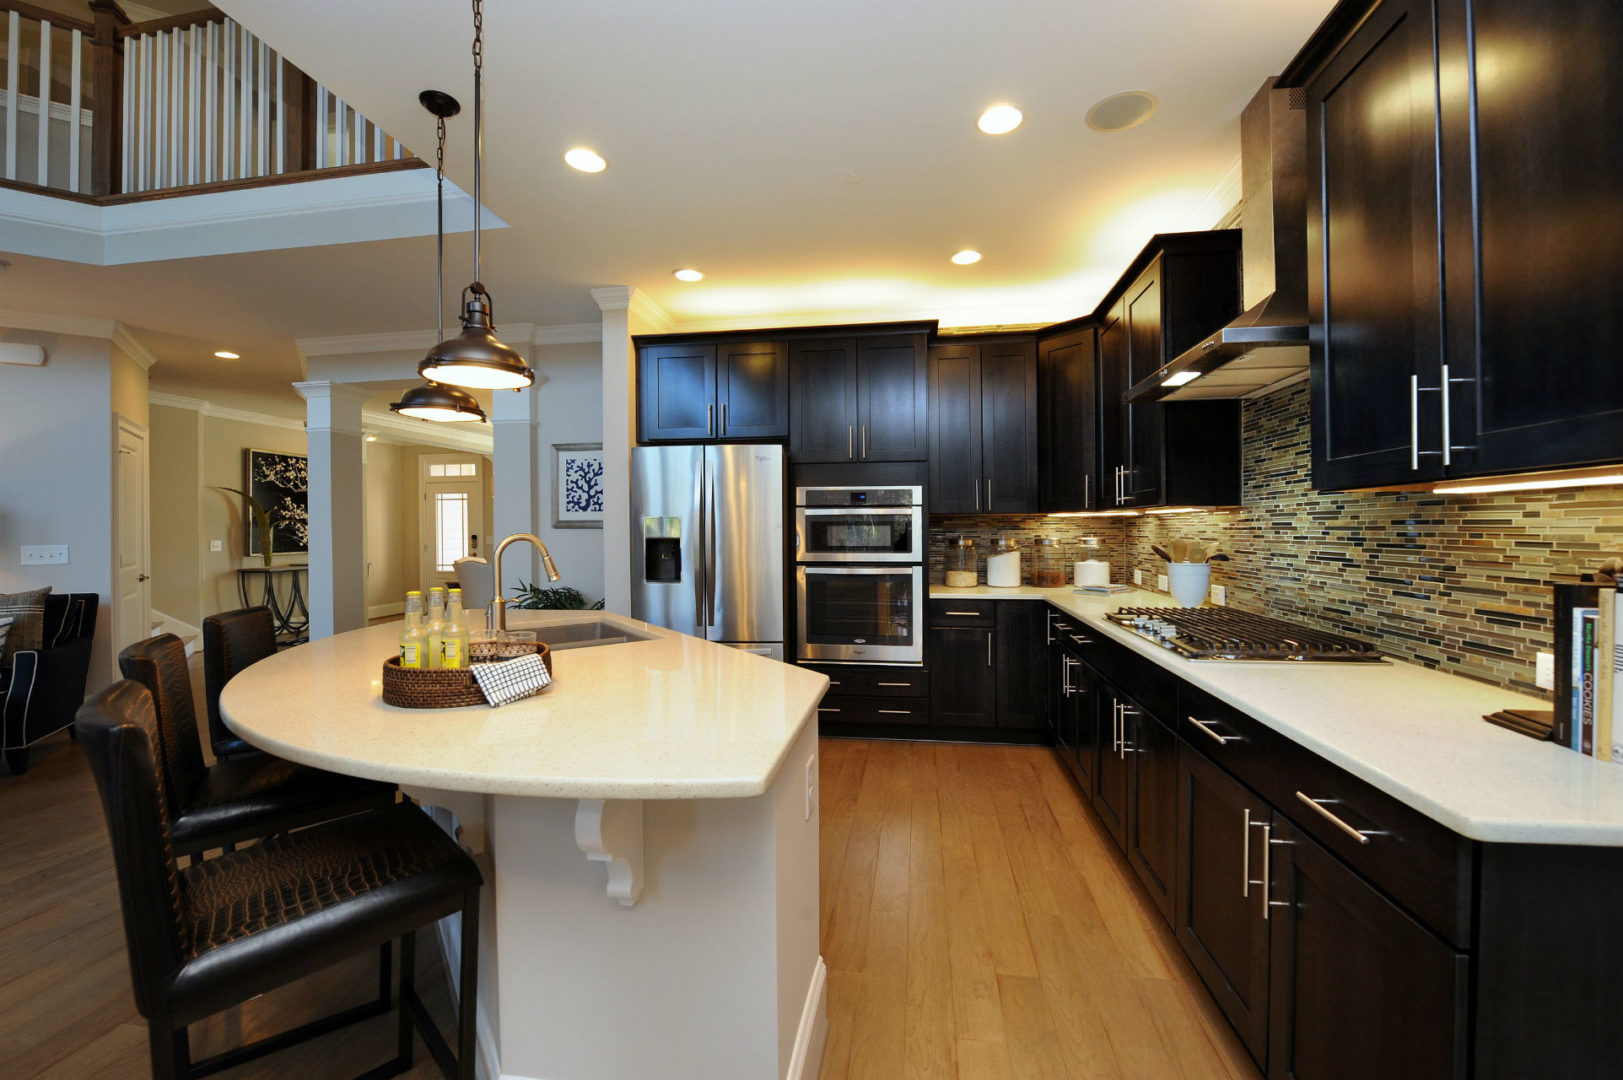 kitchens in new homes outdoor kitchen prefab kits merging rustic warmth with modern simplicity